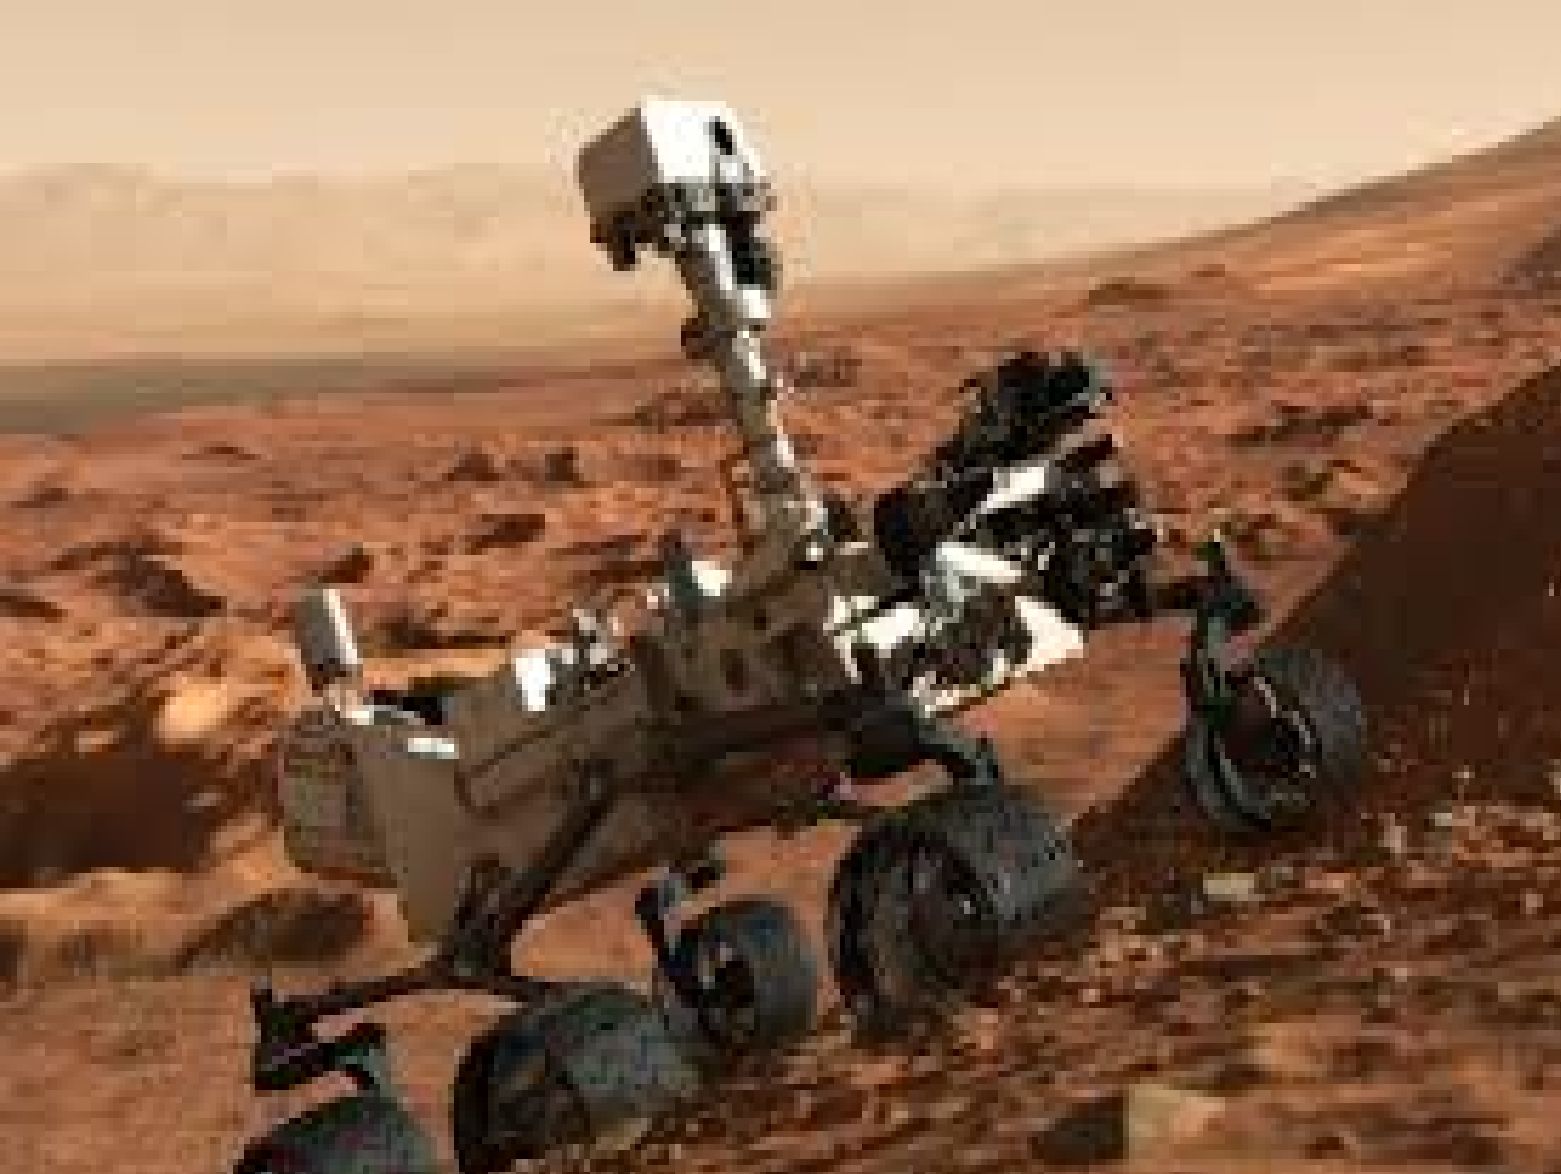 mars rover quickfacts - photo #42